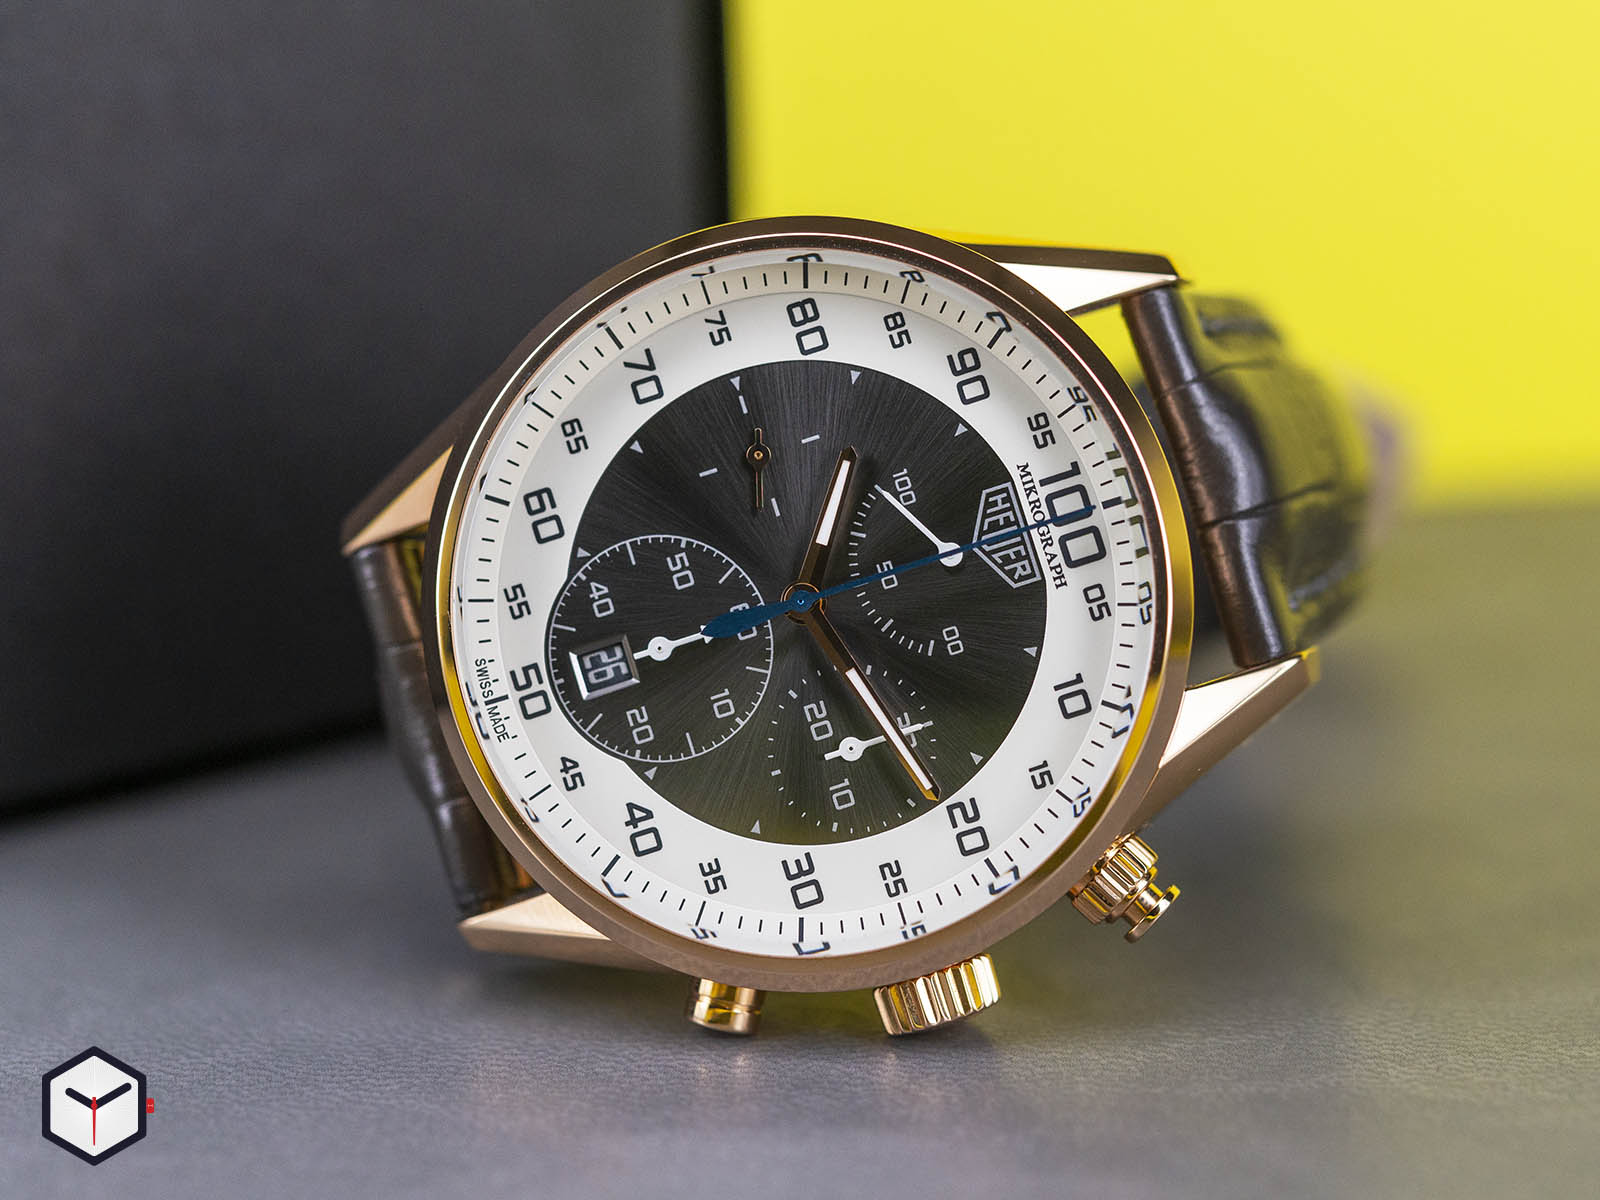 tag-heuer-carrera-mikrograph-1-100th-of-a-second-chronograph-1.jpg